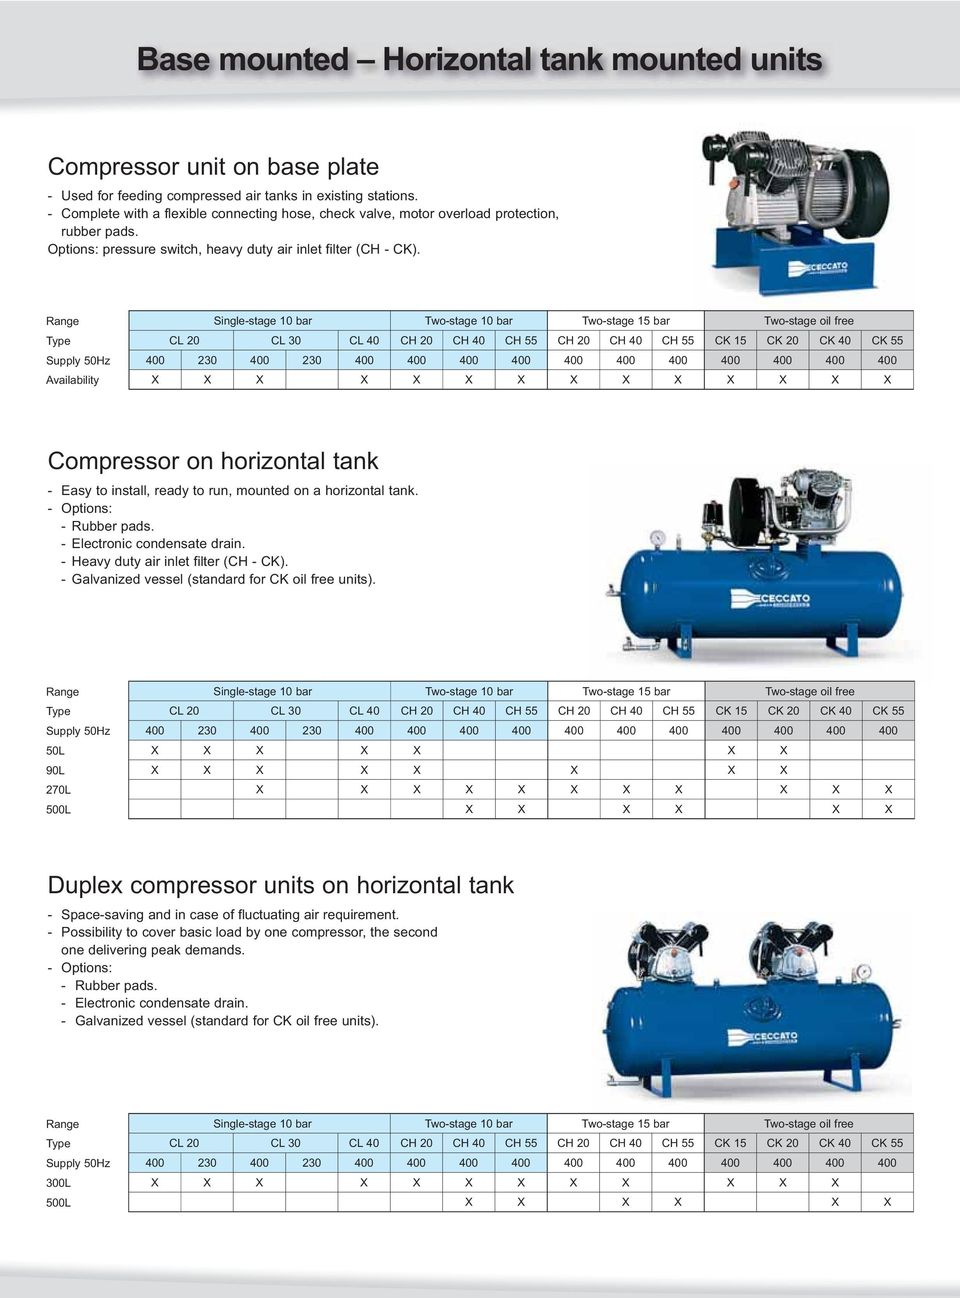 Availability X X Compressor on horizontal tank - Easy to install, ready to run, mounted on a horizontal tank. - Rubber pads. - Heavy duty air inlet filter (CH - CK).